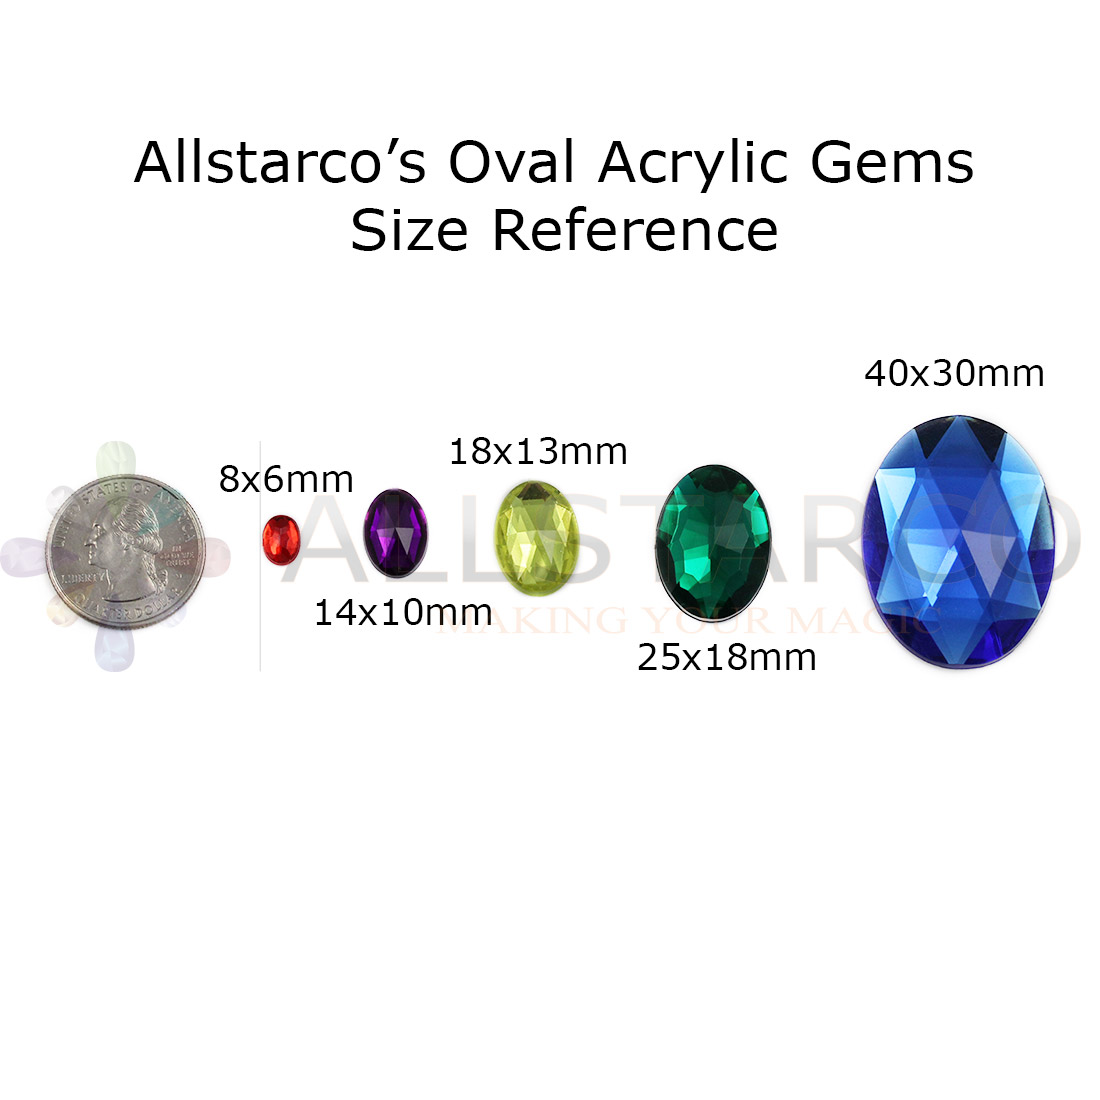 acrylic rhinestones size reference on a hand with quarter coin 25 cents